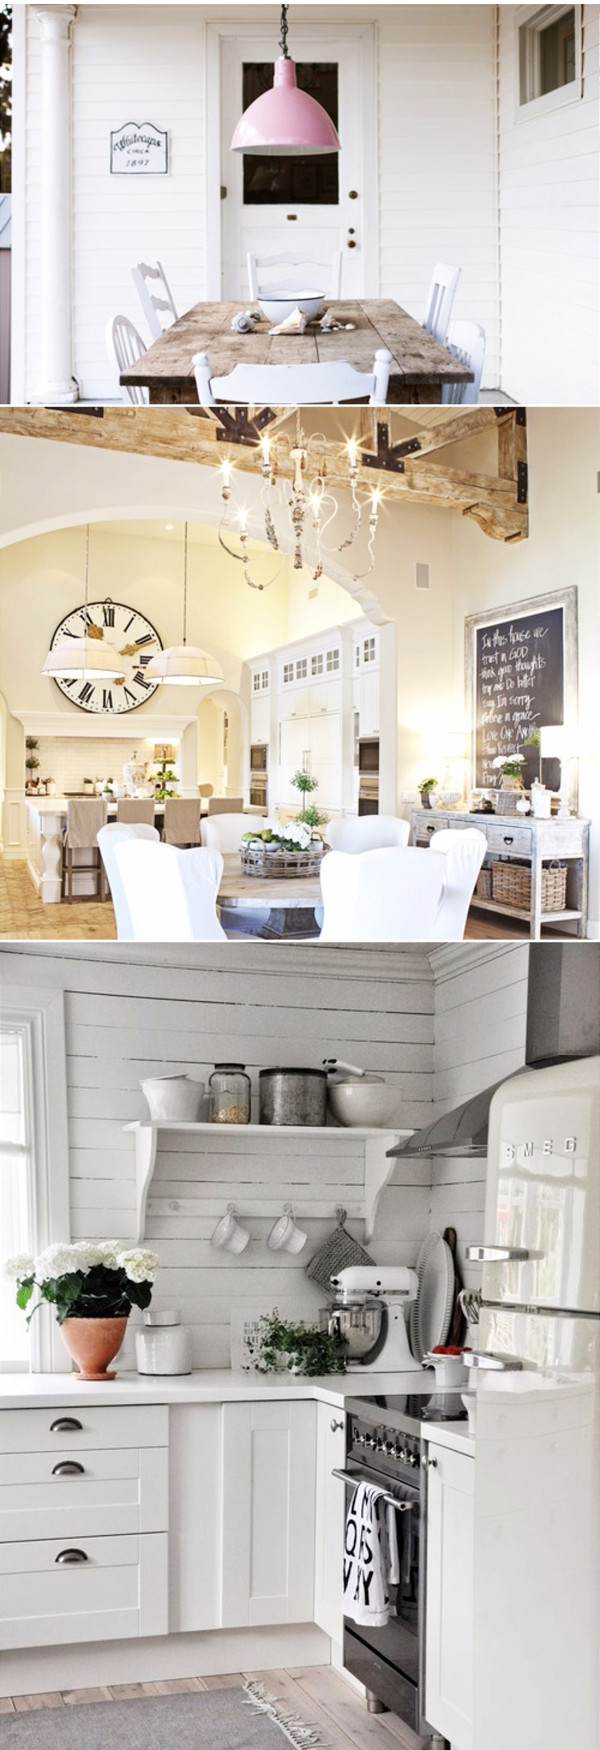 Modern Farmhouse Decorating ideas